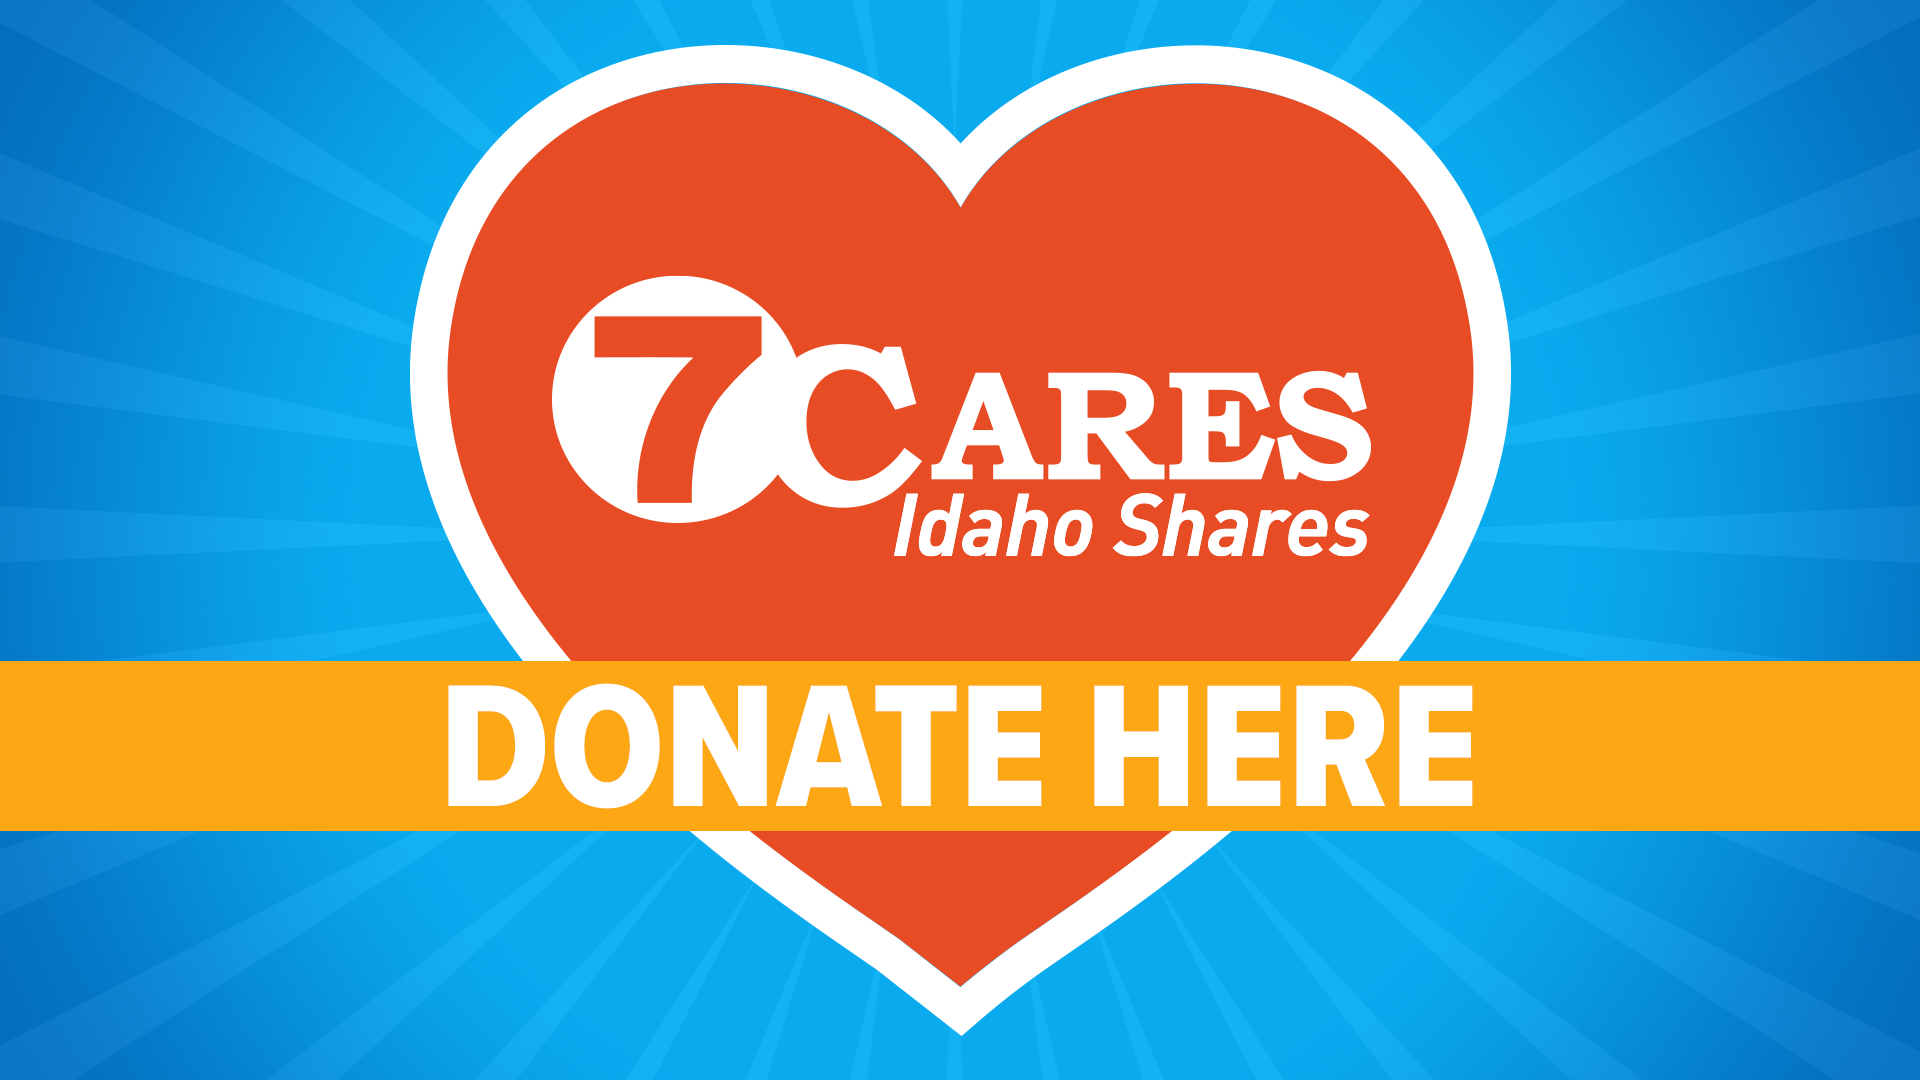 Donate here to the 7Cares fund in the Idaho Community Foundation